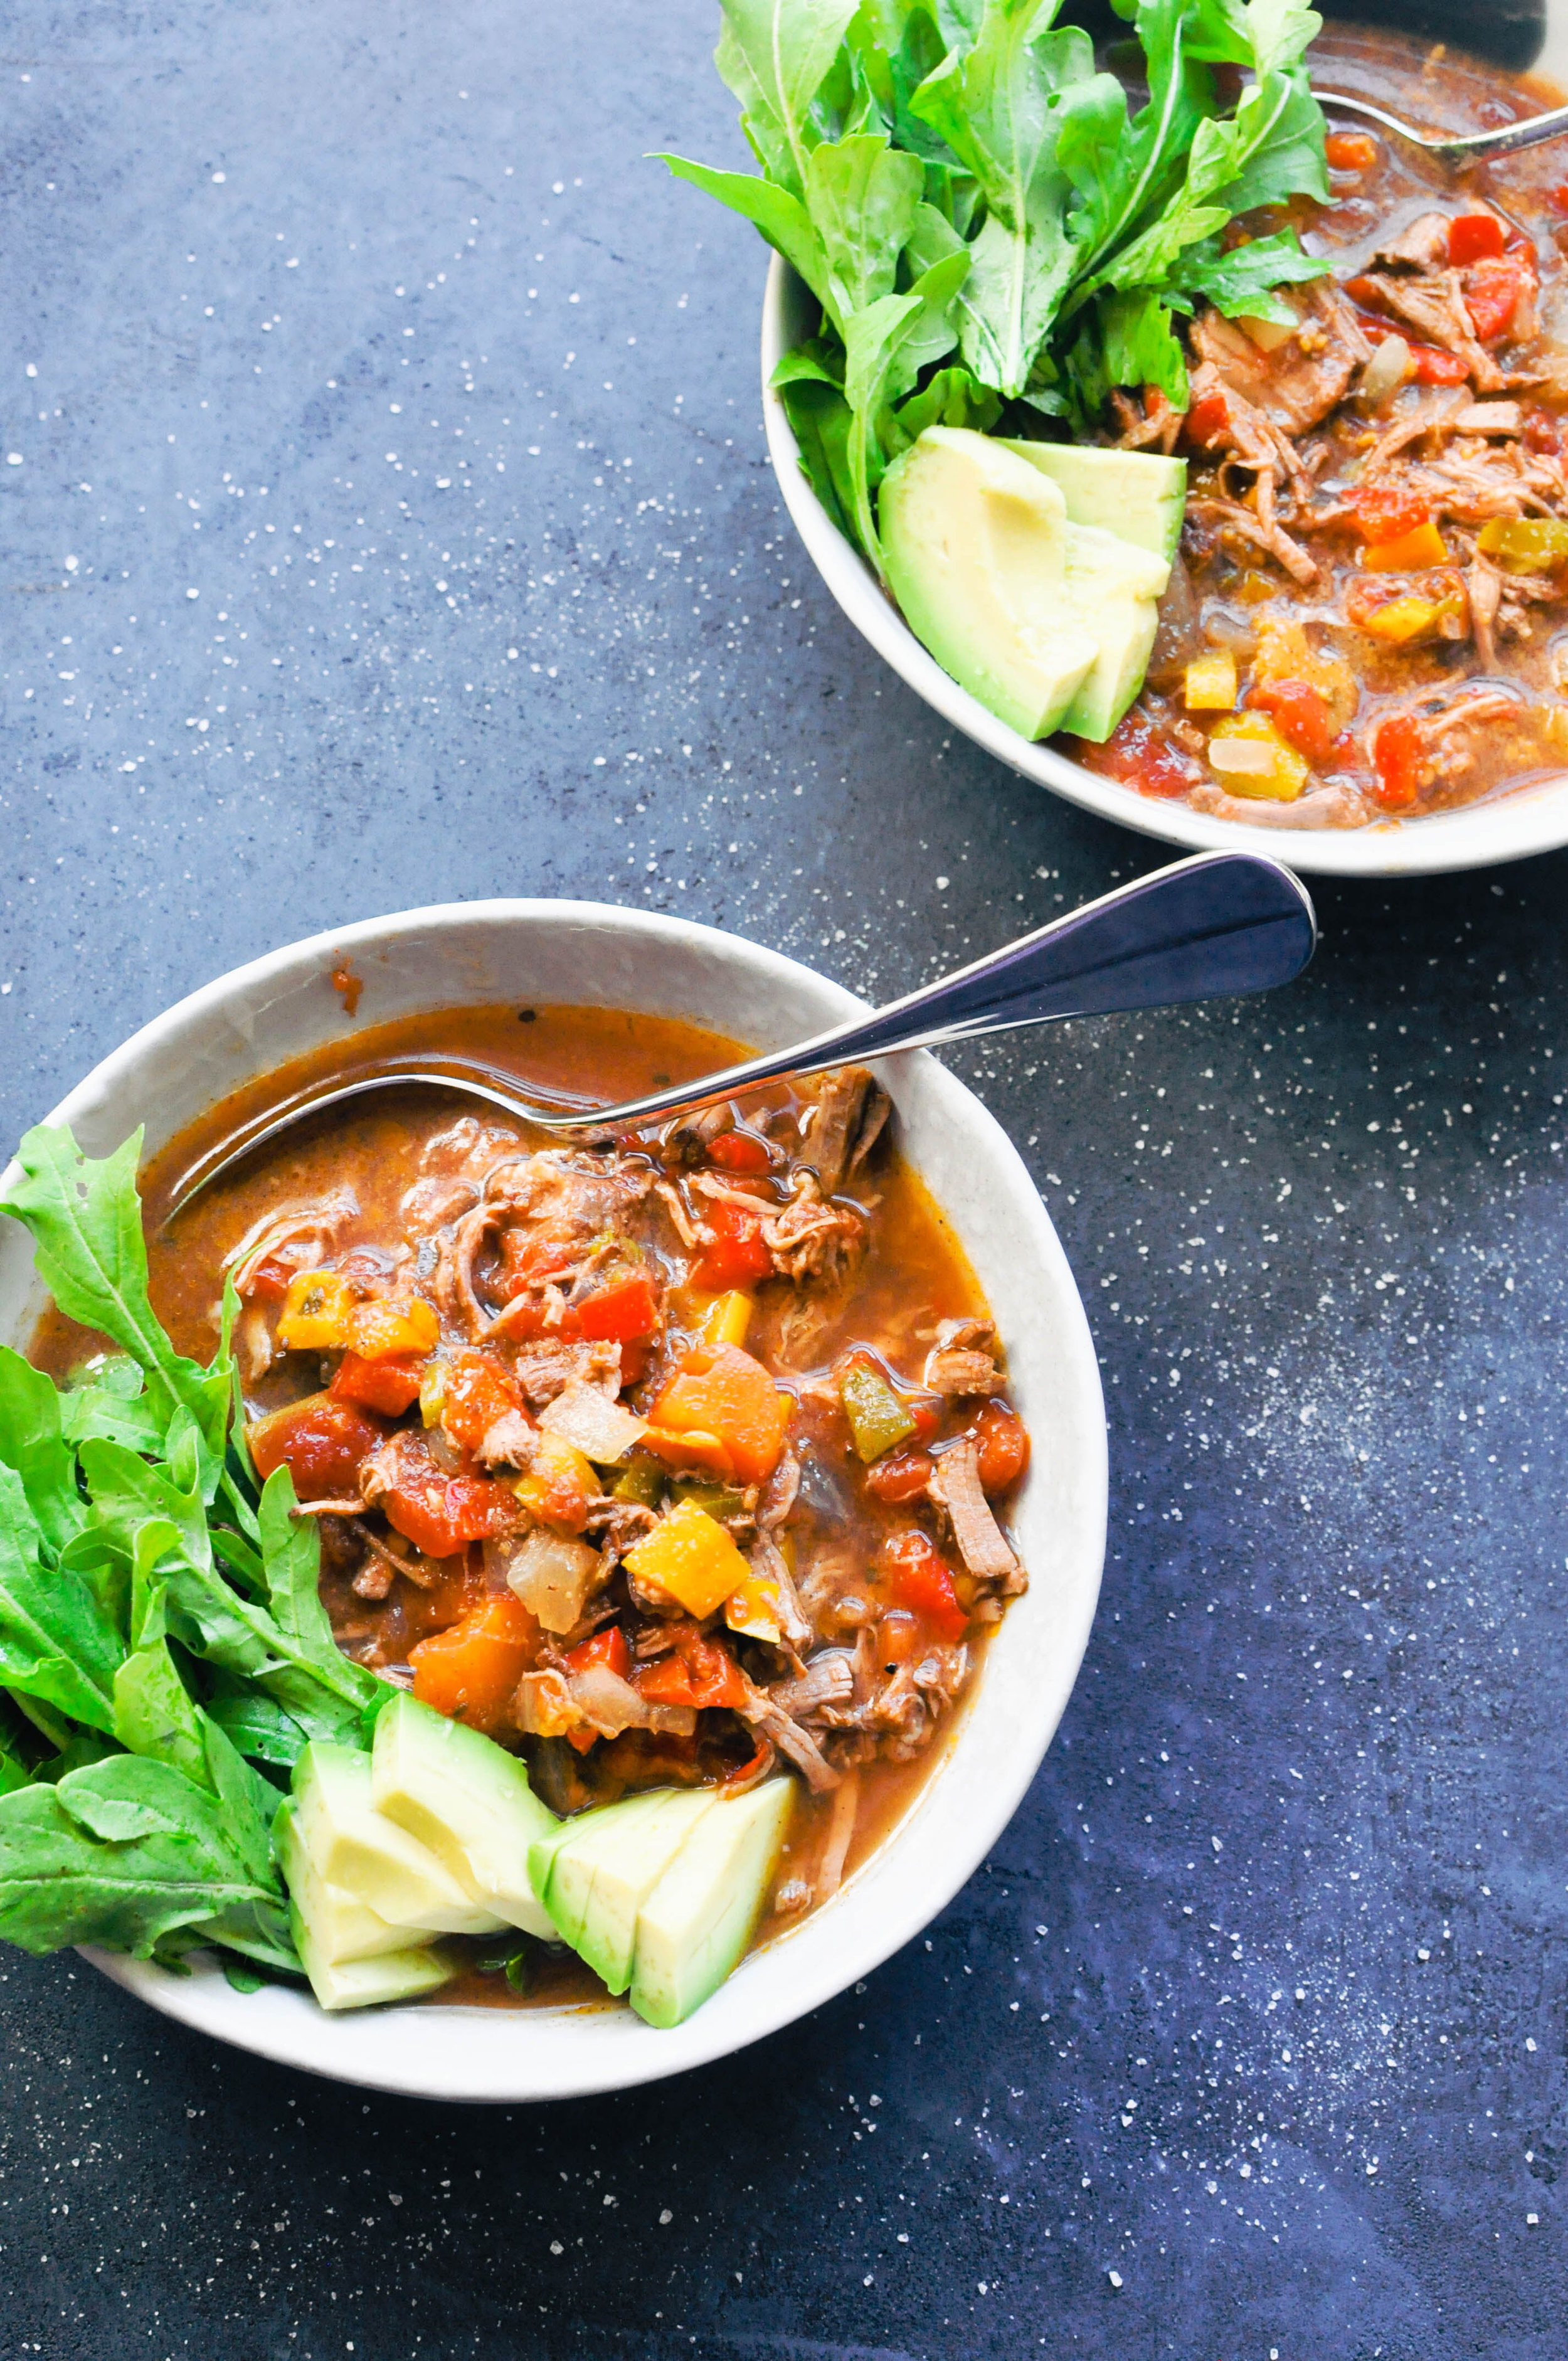 Slow Cooker Brisket Chili Recipe | This Healthy Table